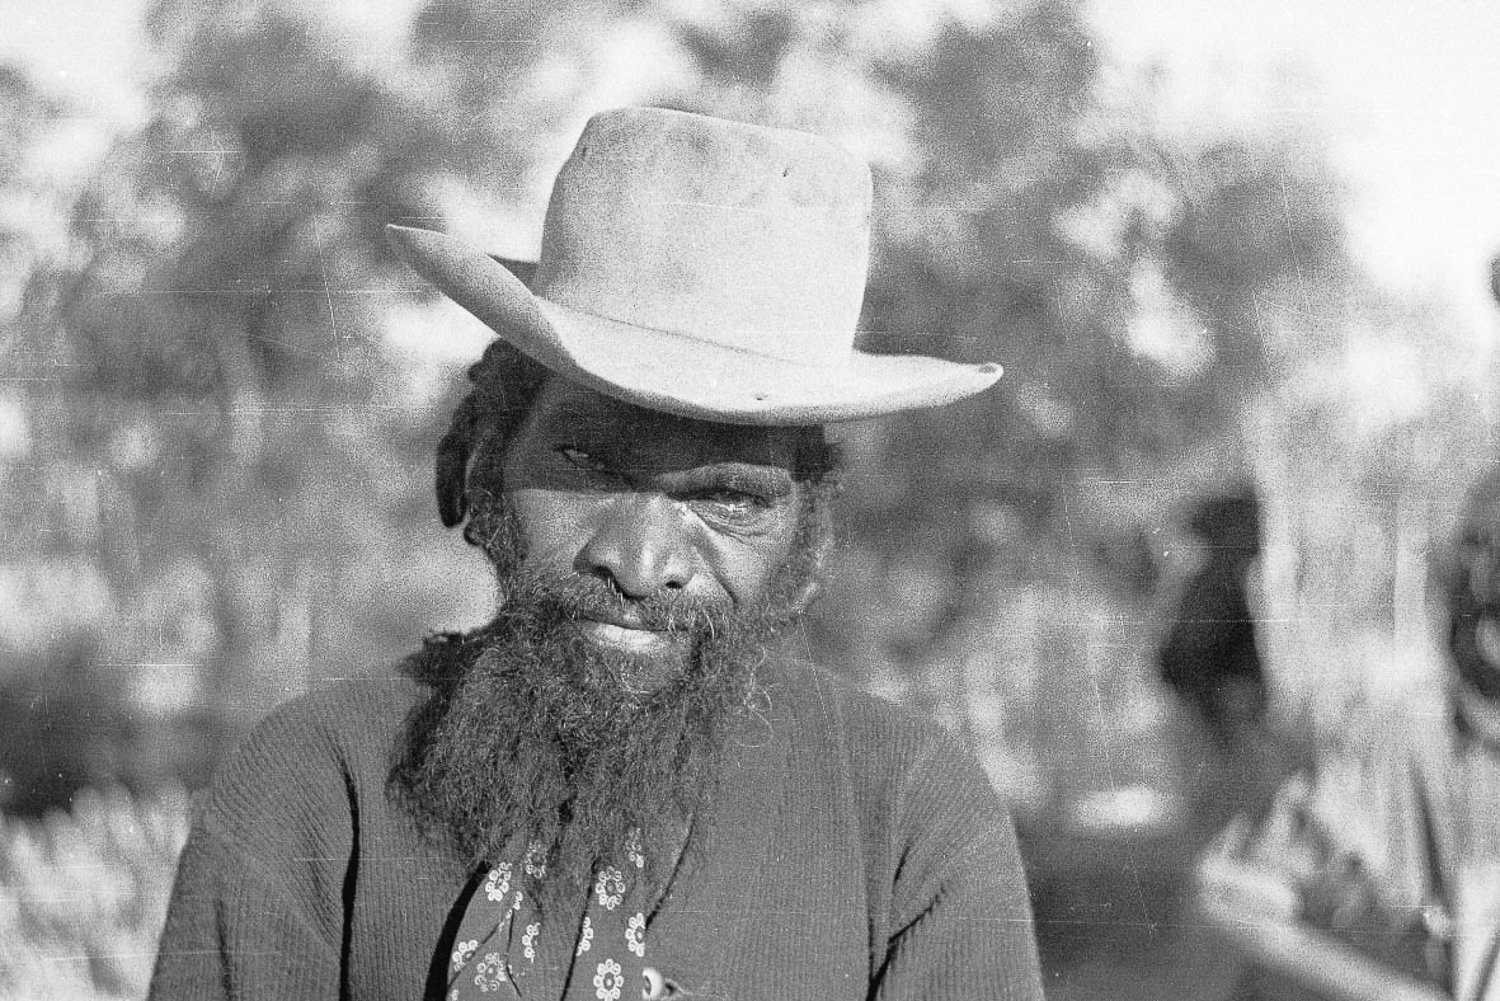 Frank Hogan (relative of Rusty Hogan, above) one of the many Anangu people 'brought in' to Cundeelee mission from Spinifex Country. Many of the original elders who were brought in from the bush are passing away, making historical collections of photographs such as these extremely valuable.